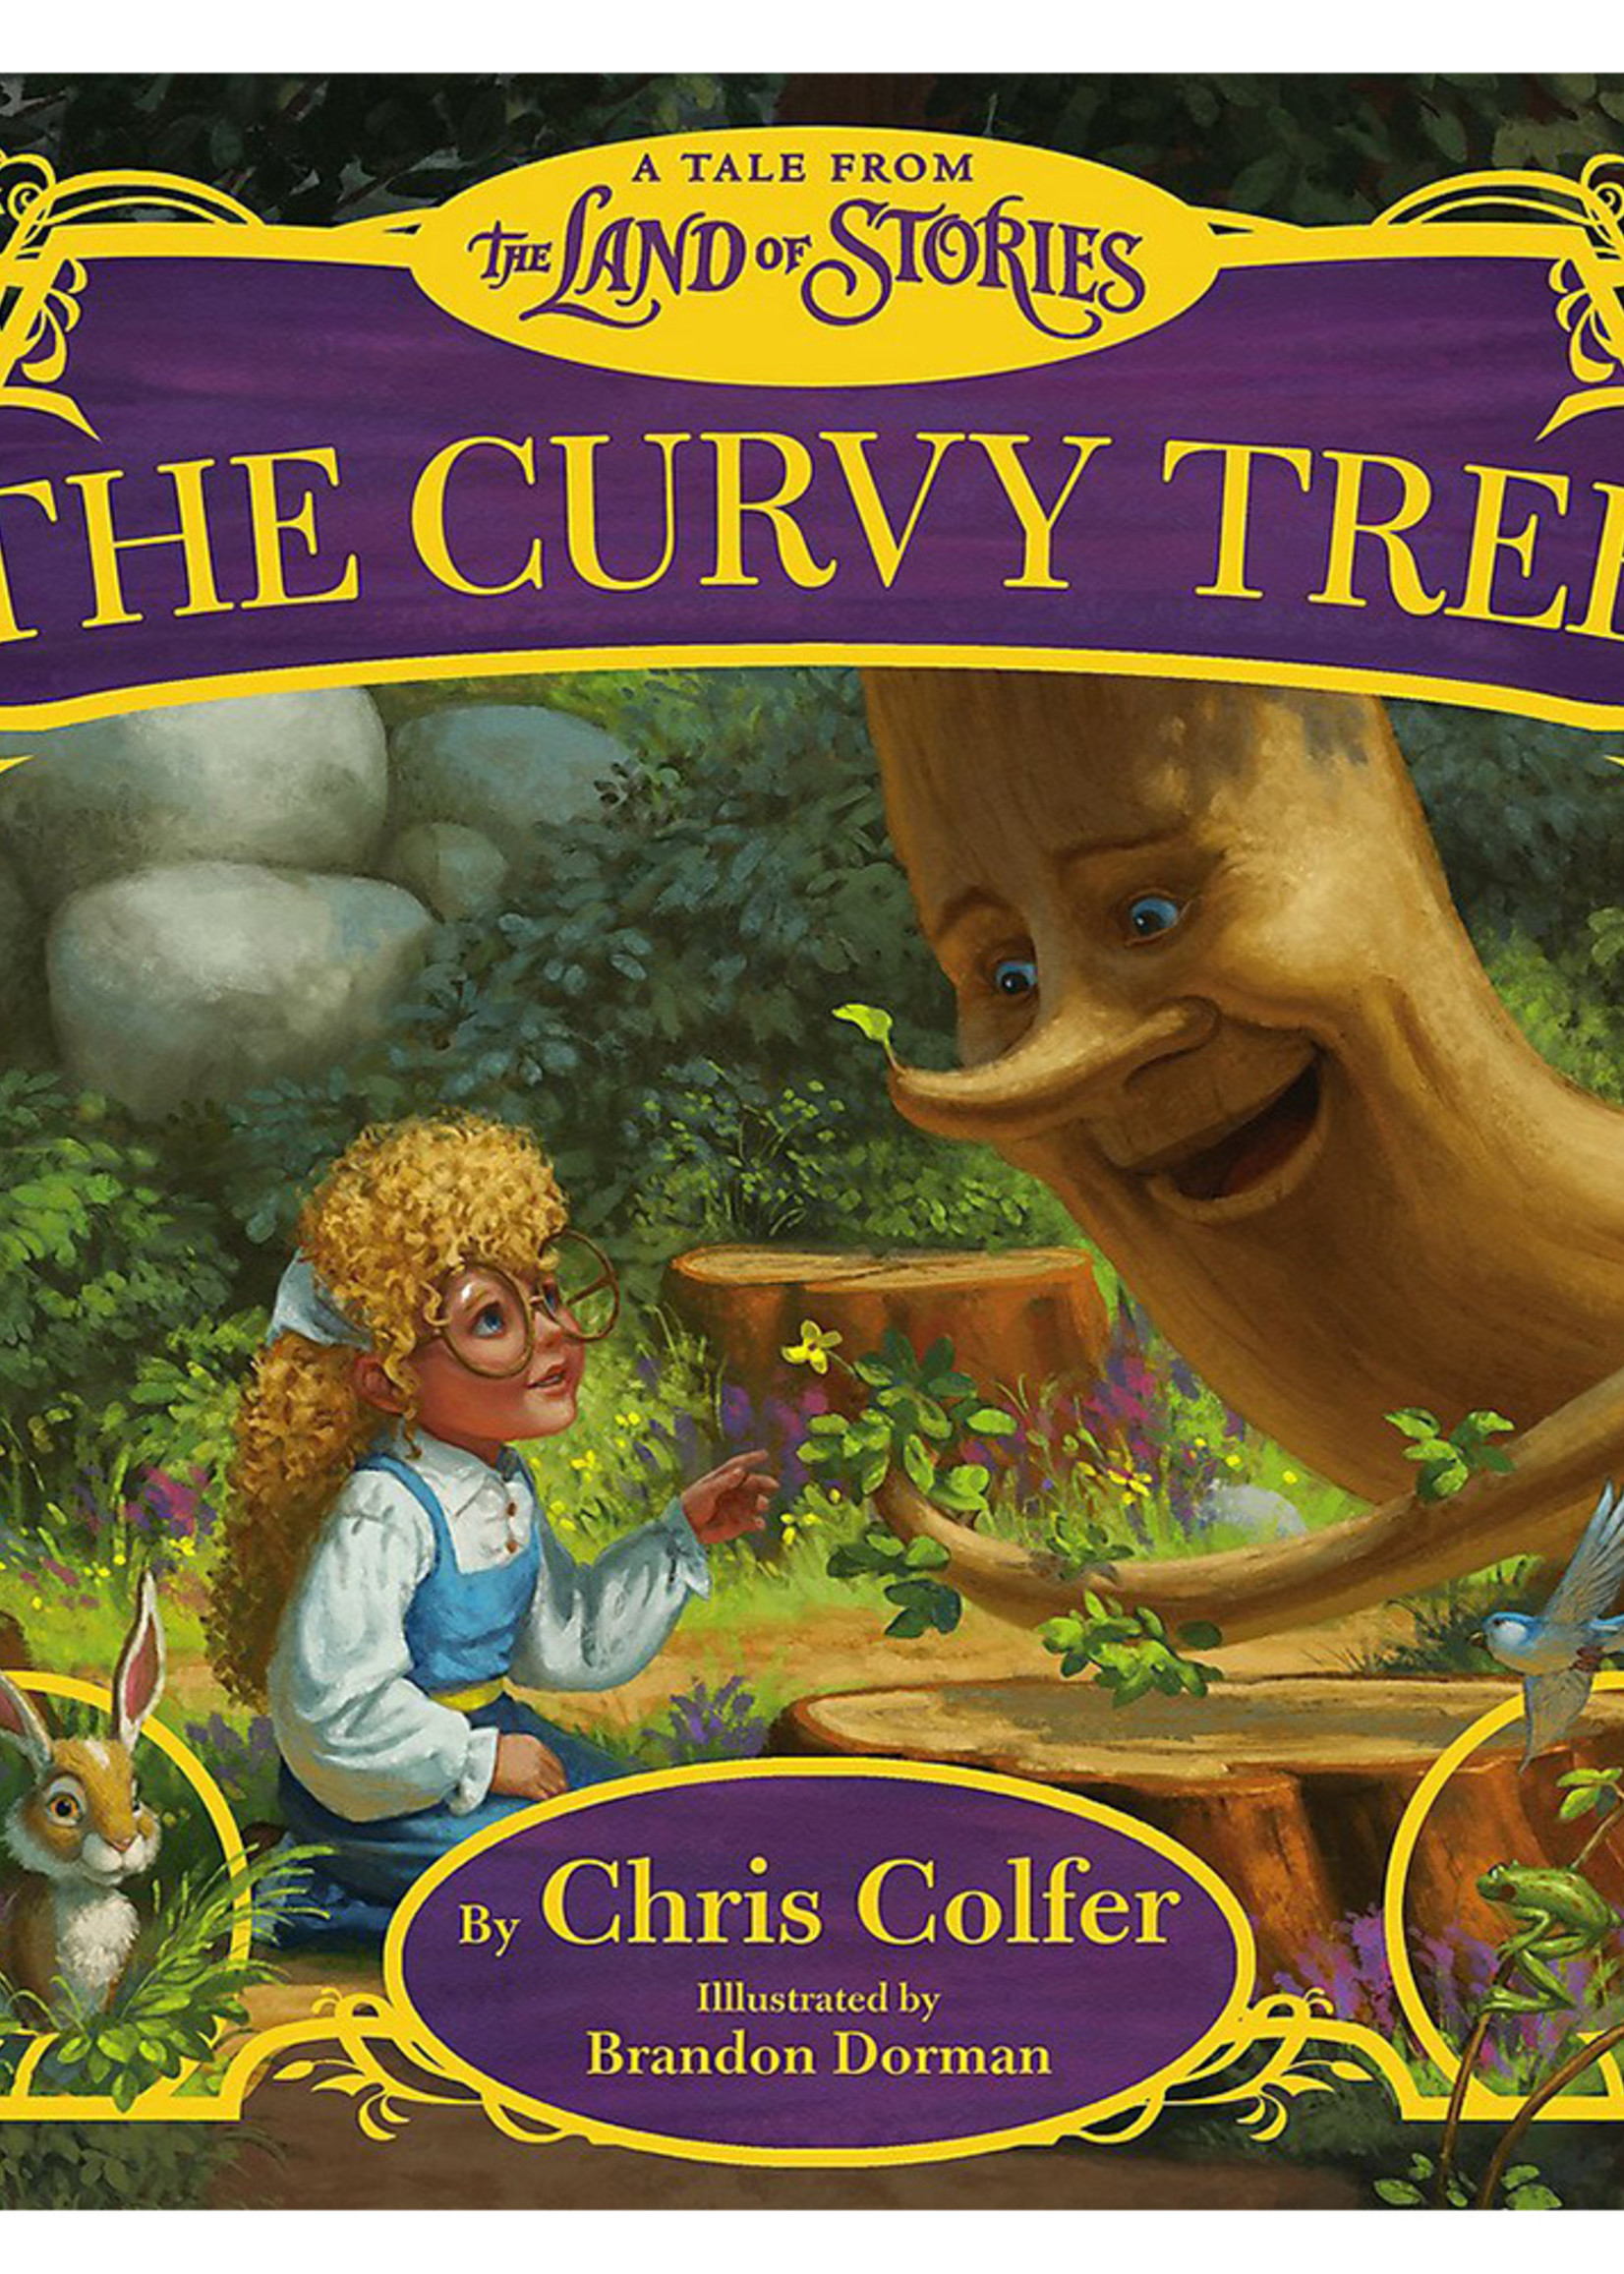 The Curvy Tree, A Tale From the Land of Stories - Hardcover